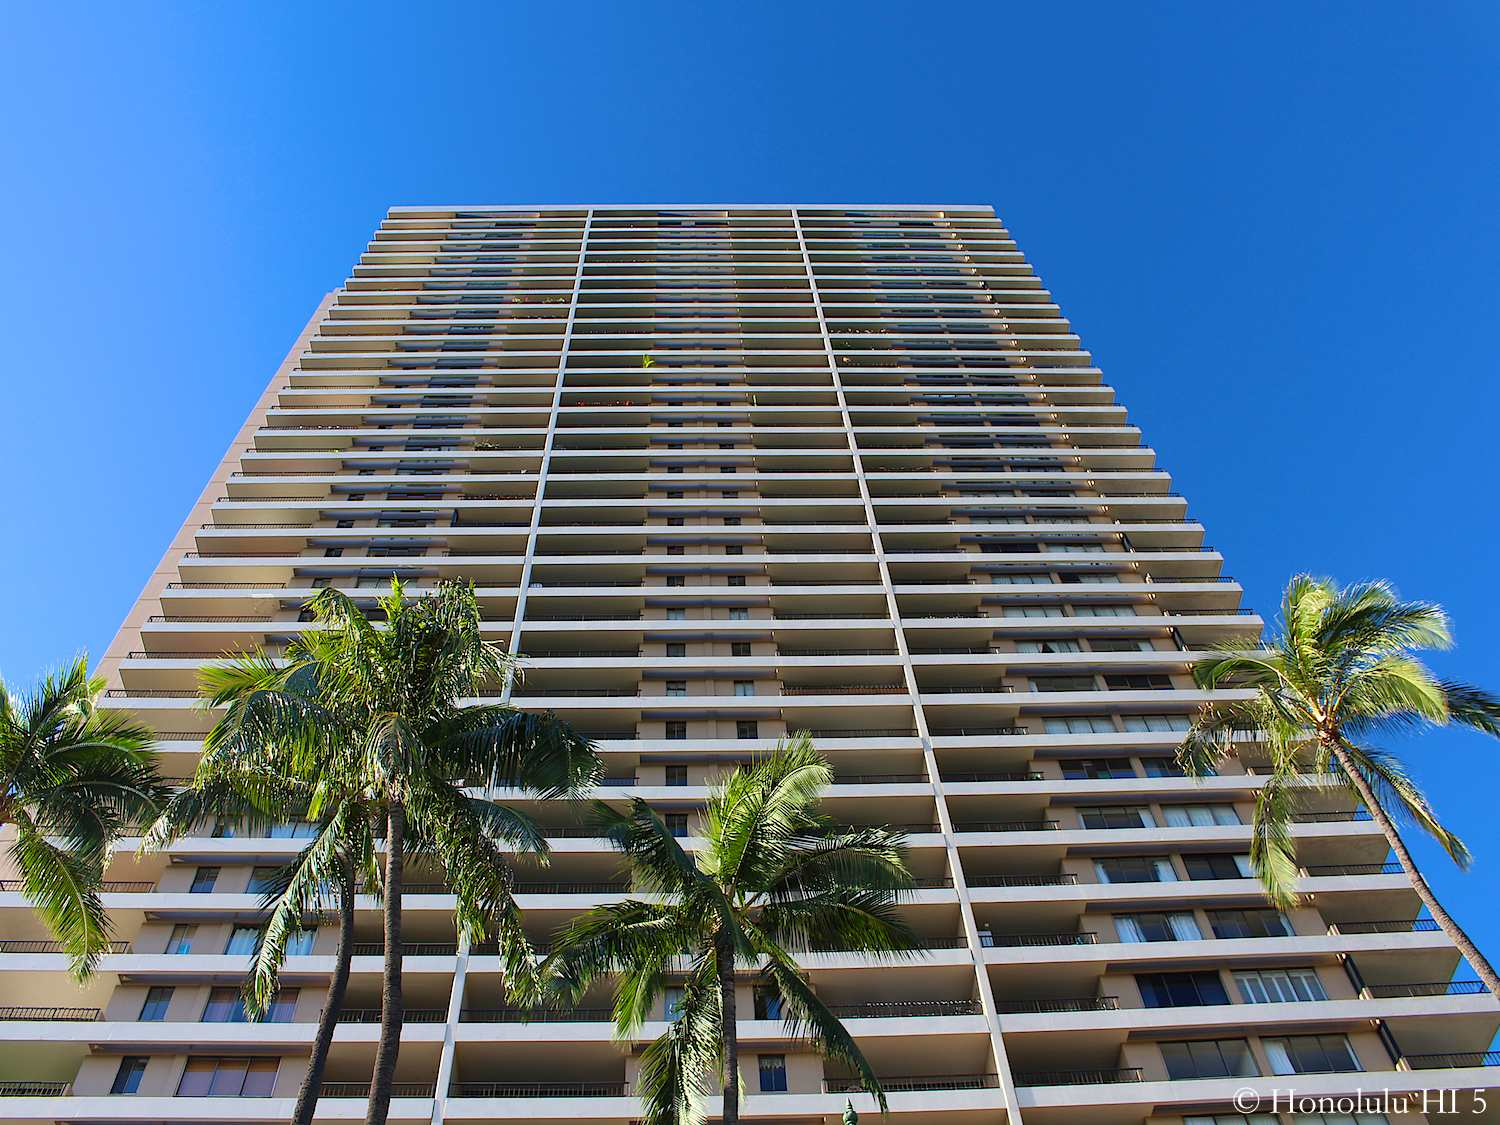 Photo of 1717 Ala Wai Condo From Bottom Up - a Tall High-rise